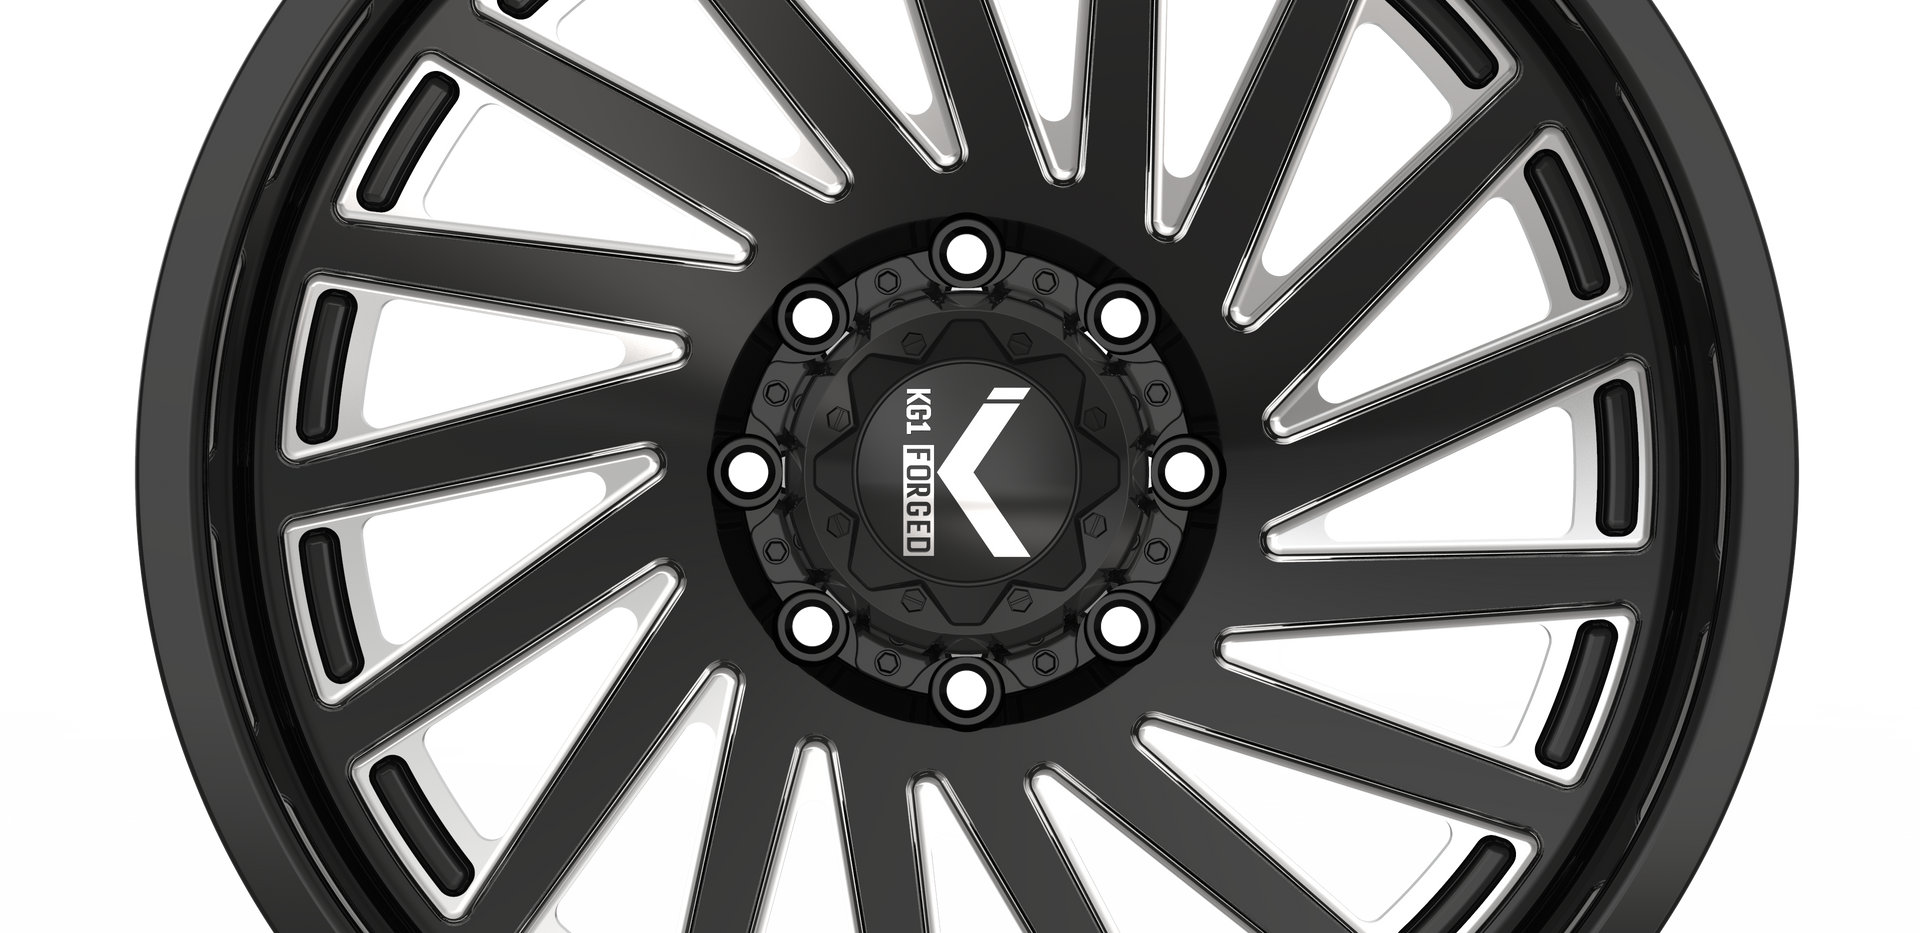 BOOST KC006R-2212-8H- Black Machining-1.